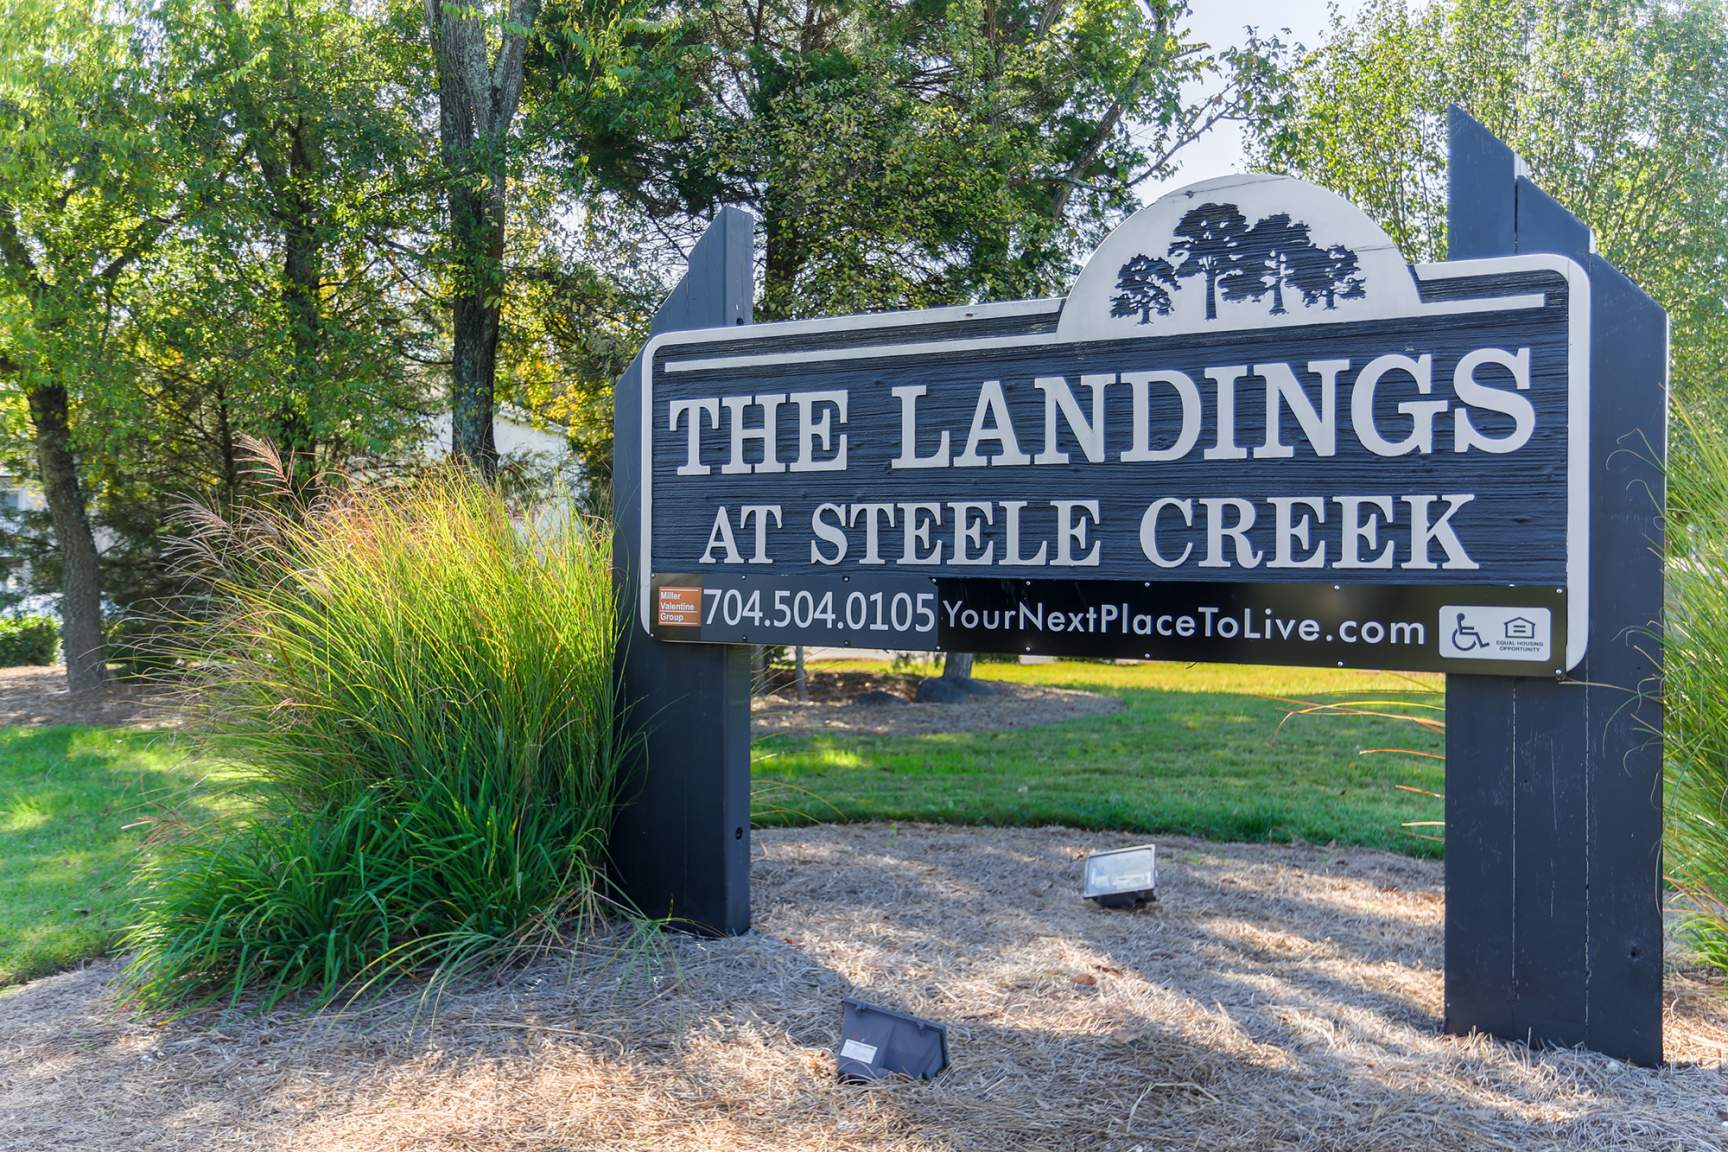 The Landings at Steele Creek - Affordable Housing